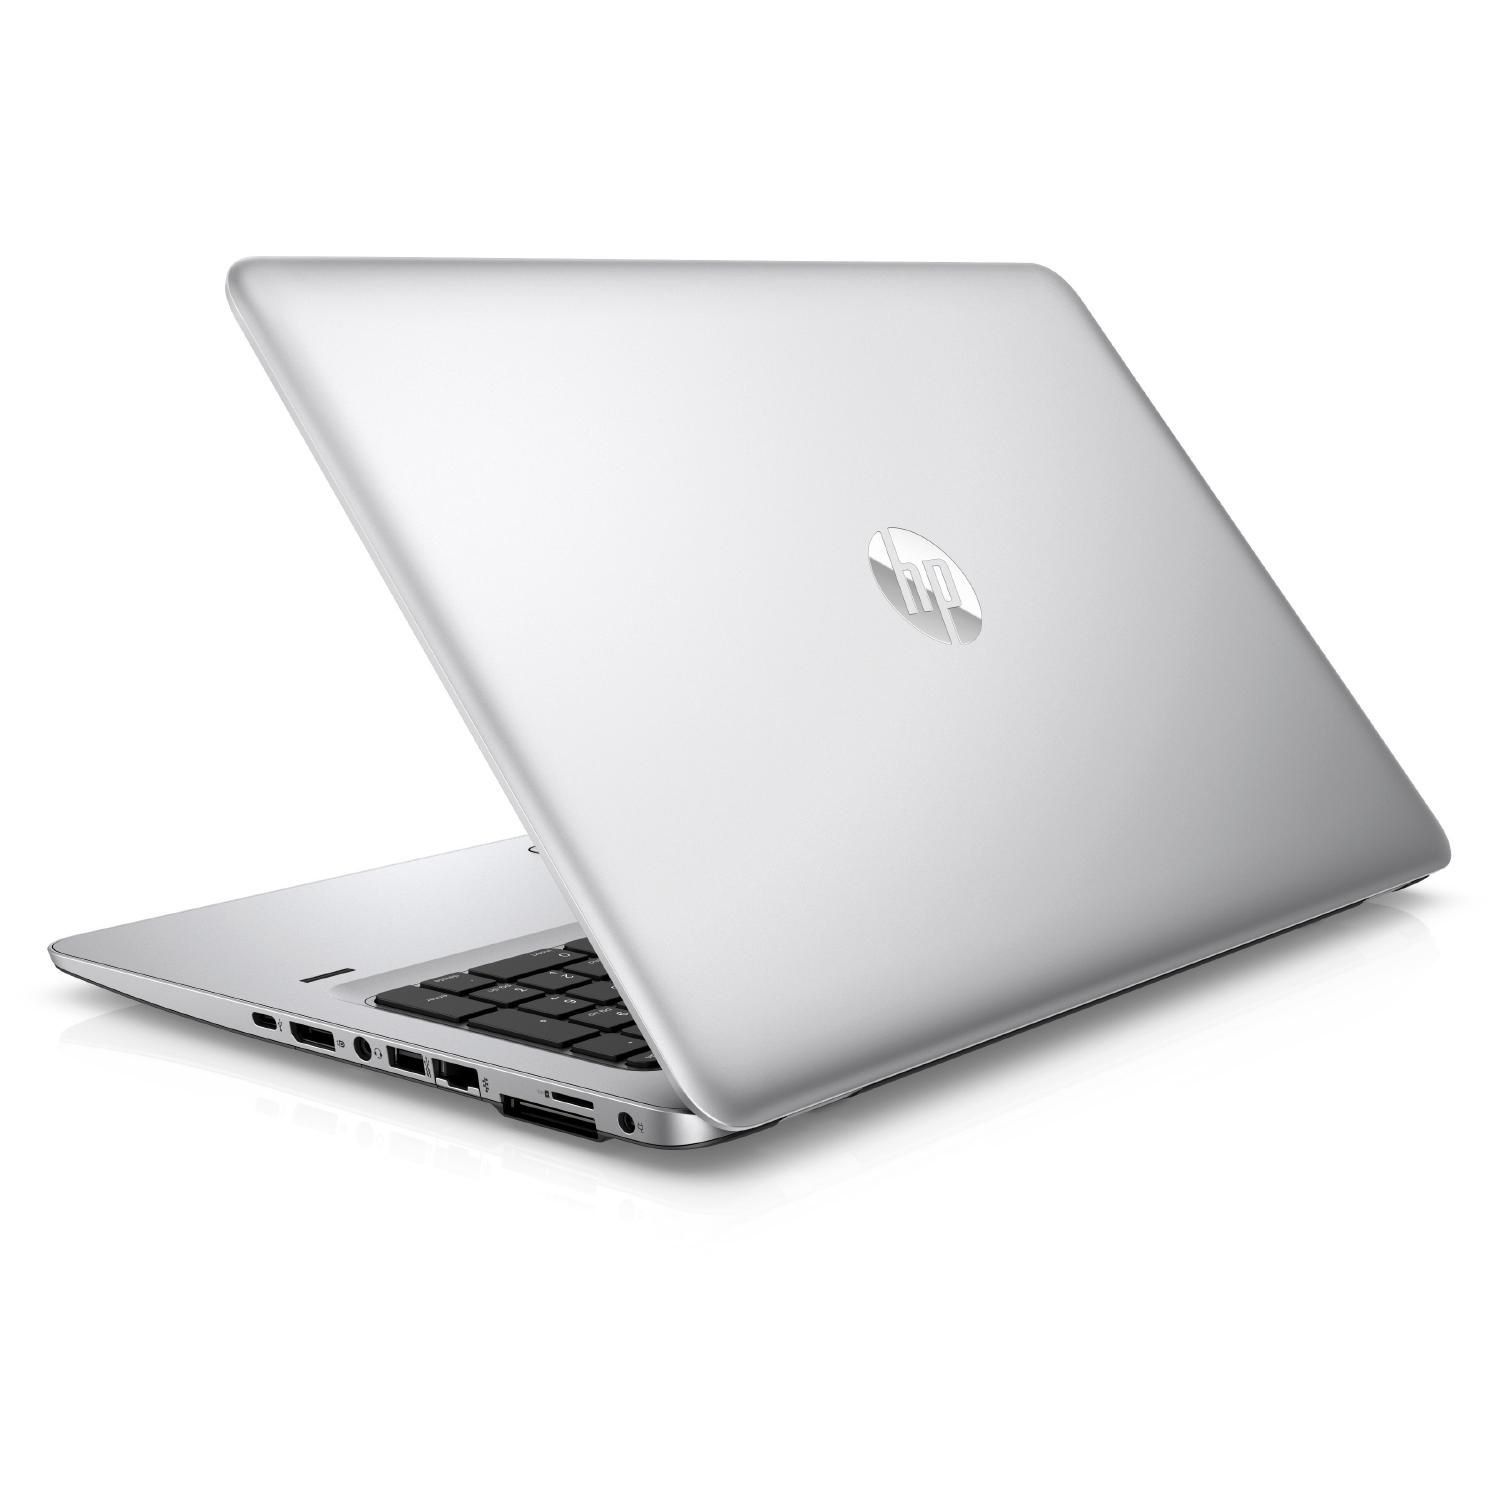 HP EliteBook 850 G3 Conexant HD Audio Download Drivers